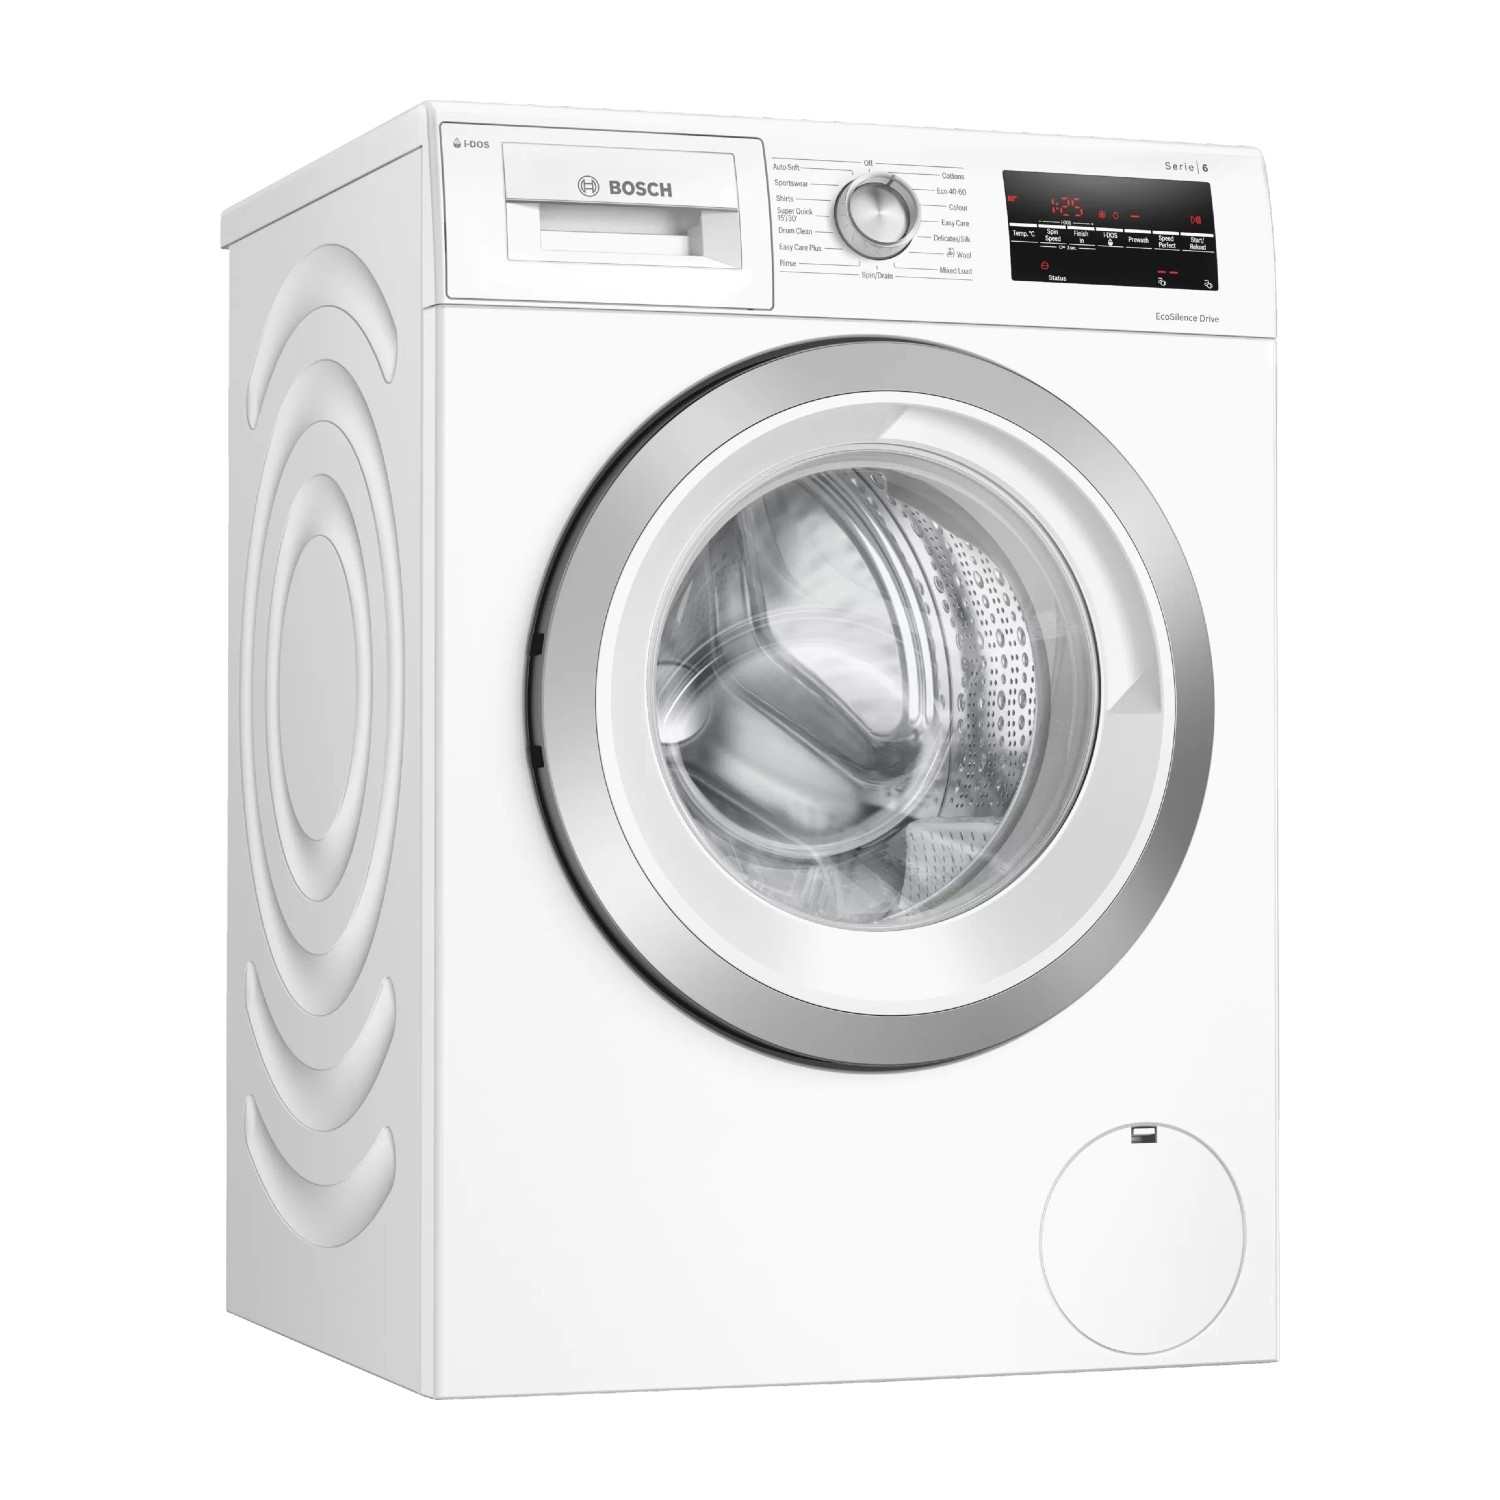 Bosch 8kg 1400 Spin Washing Machine - White - A+++ Energy Rated - 0